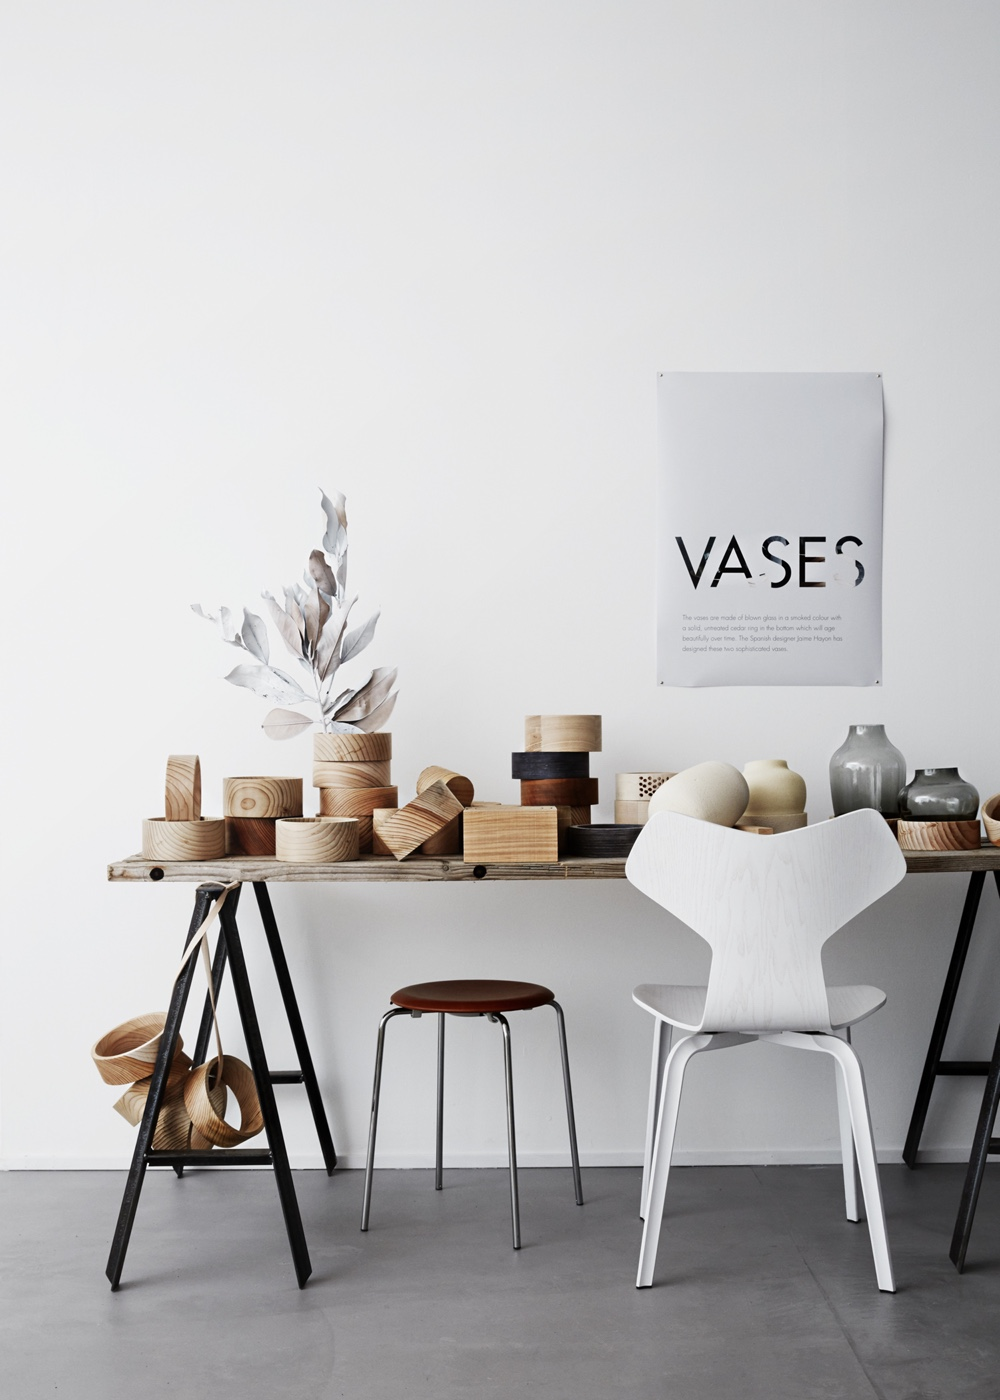 Vases and Dot Stool